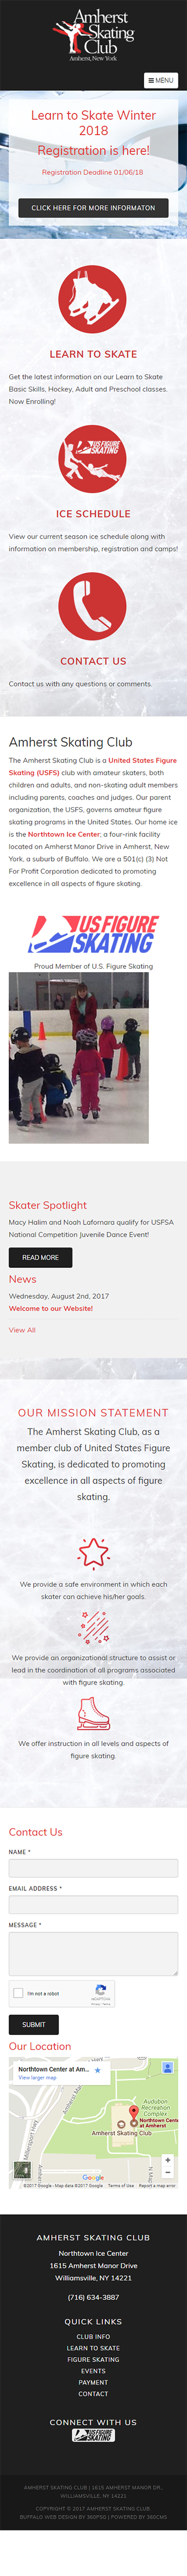 Amherst Skating Club Mobile